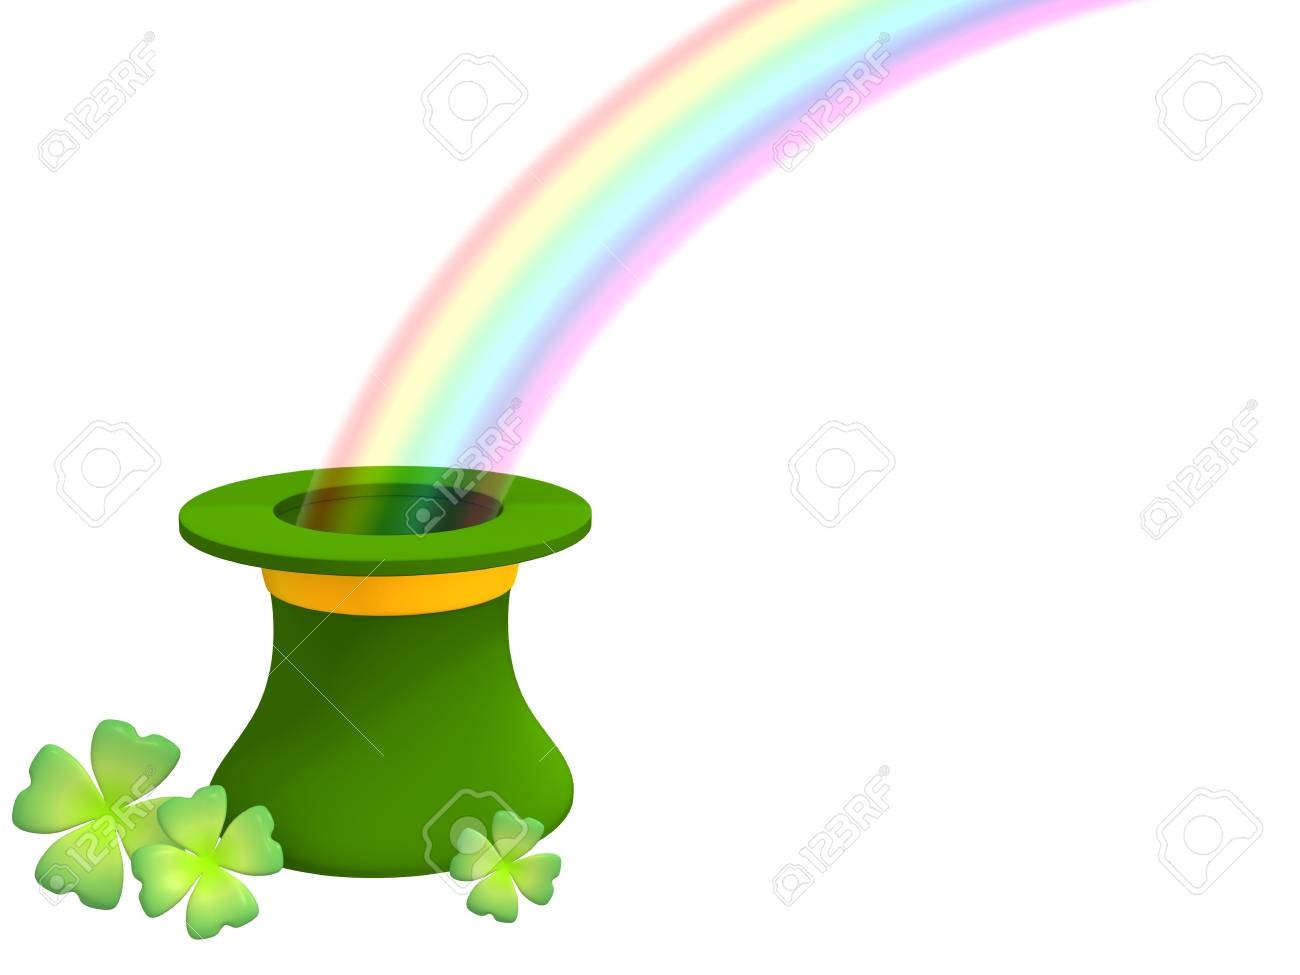 The rainbow growing from a green hat Stock Photo - 2847023